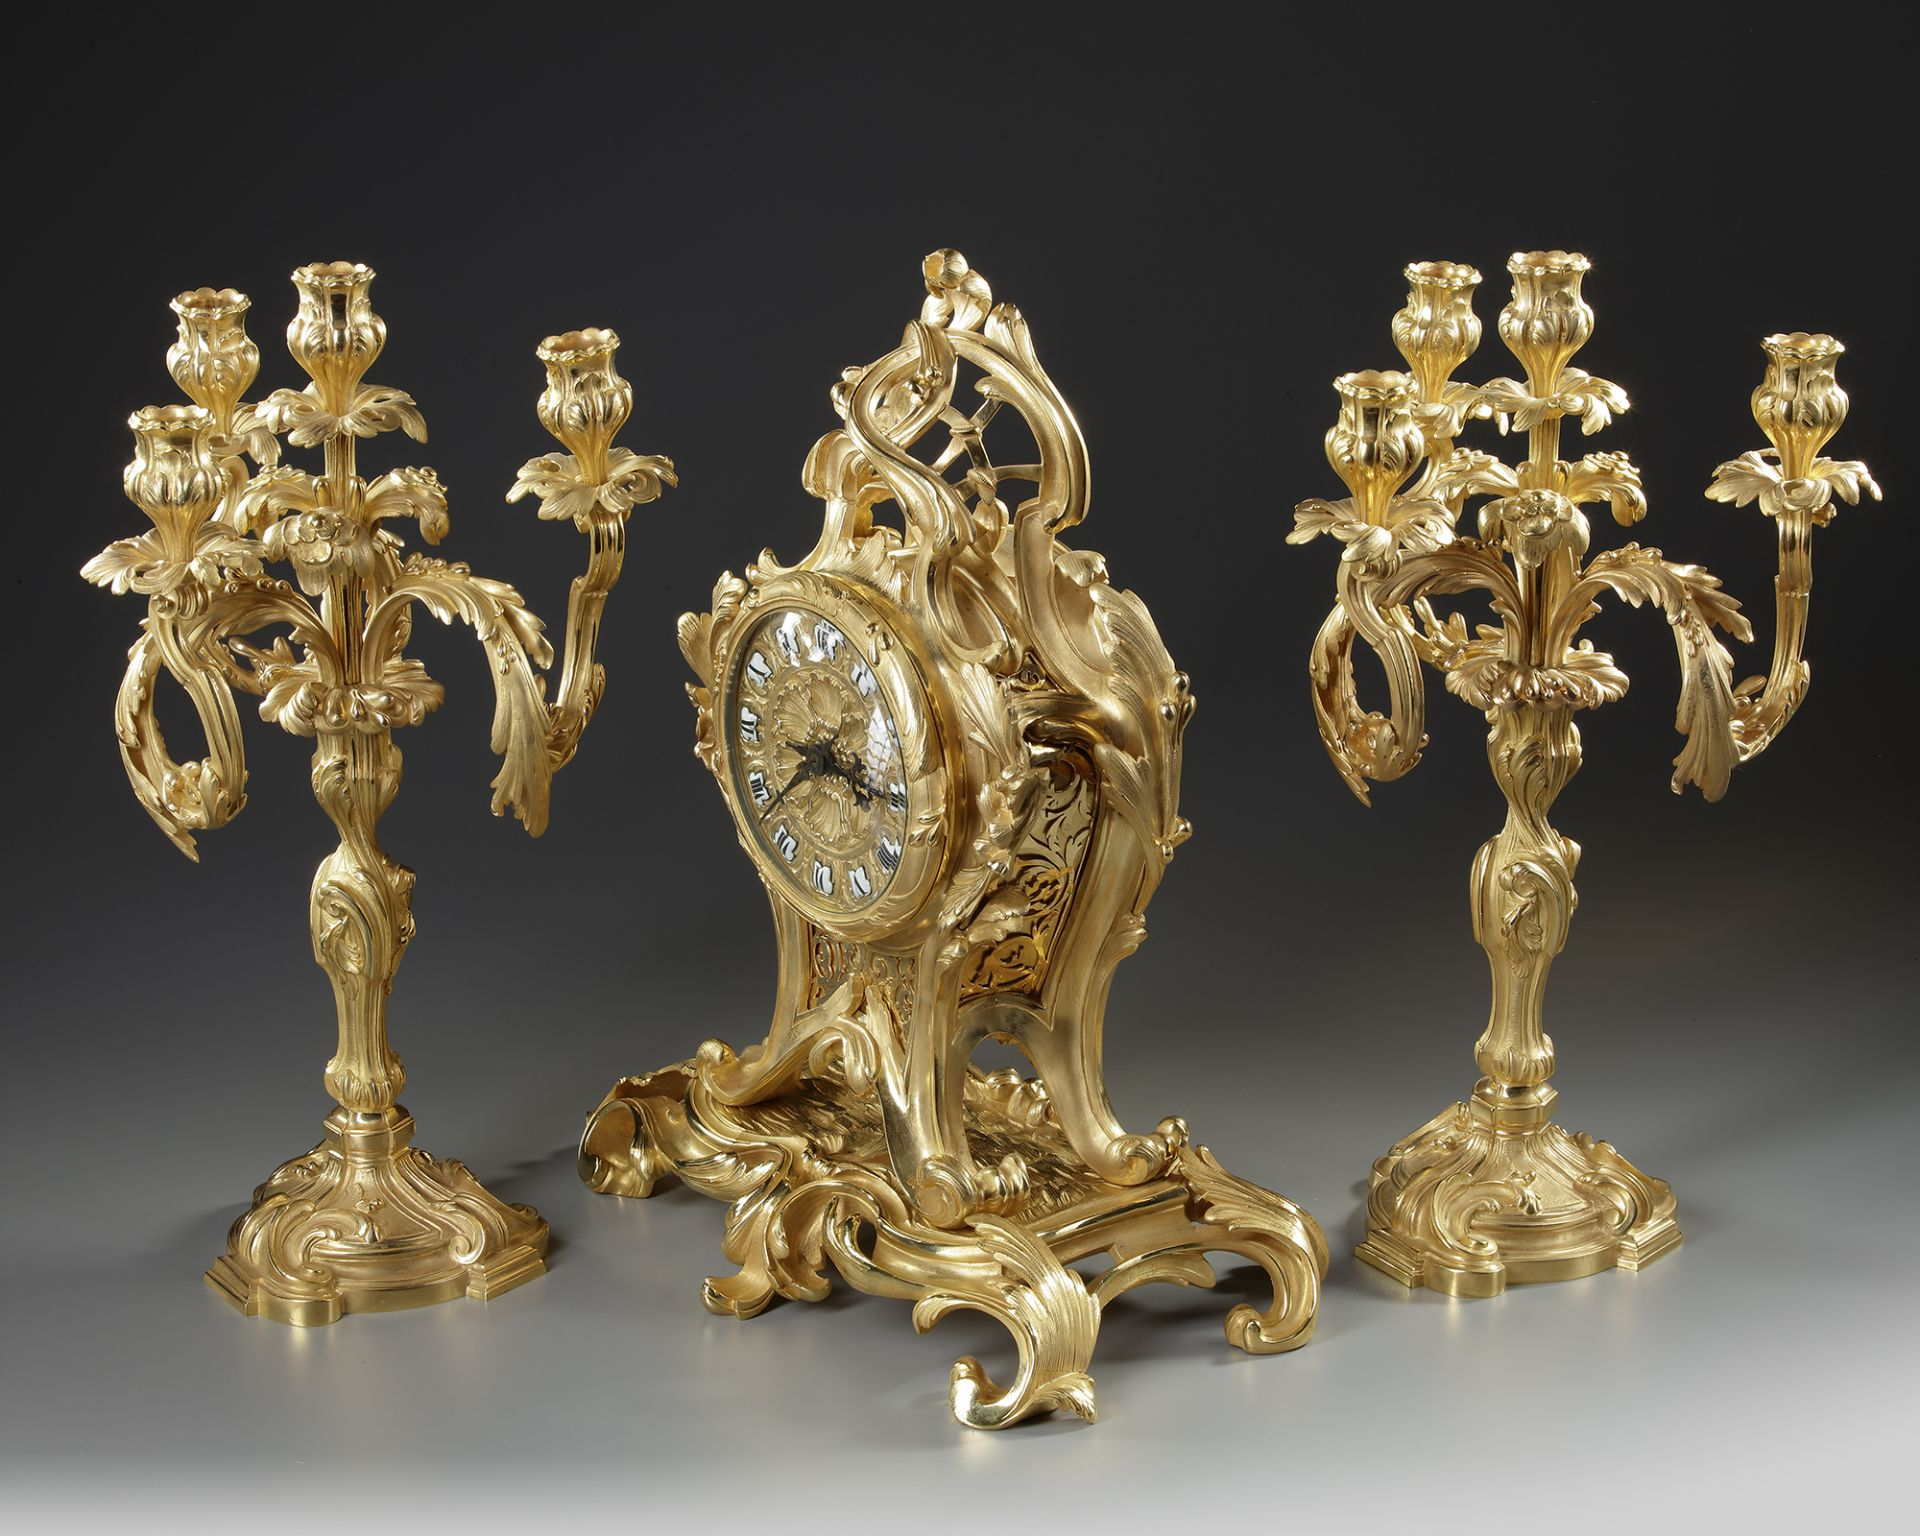 A FRENCH ORMOLU CLOCK SET, 19TH CENTURY - Image 2 of 3